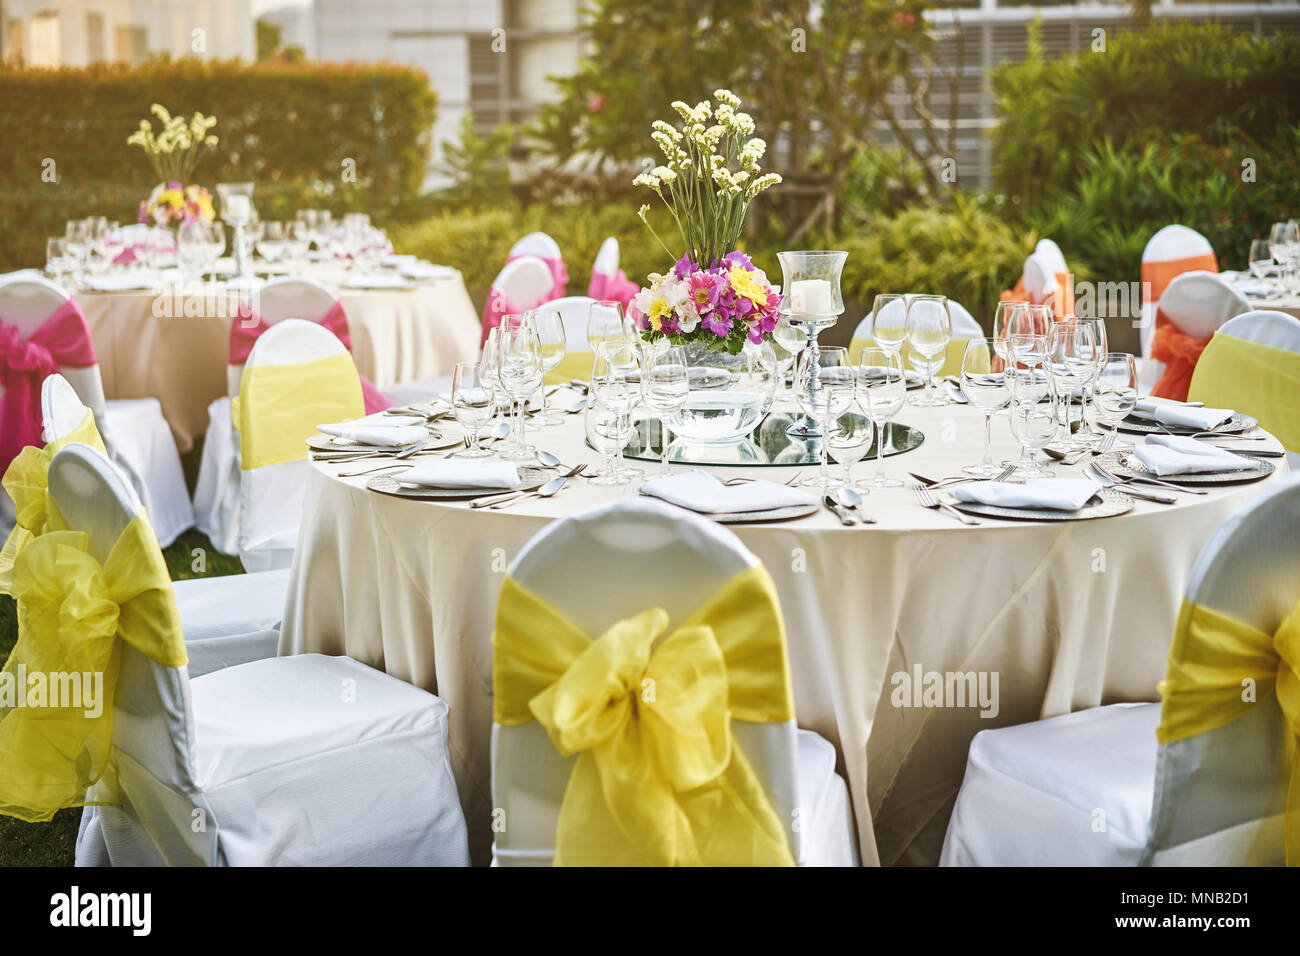 Wedding Reception Dinner Table Setting With Empty Glasses Of Water